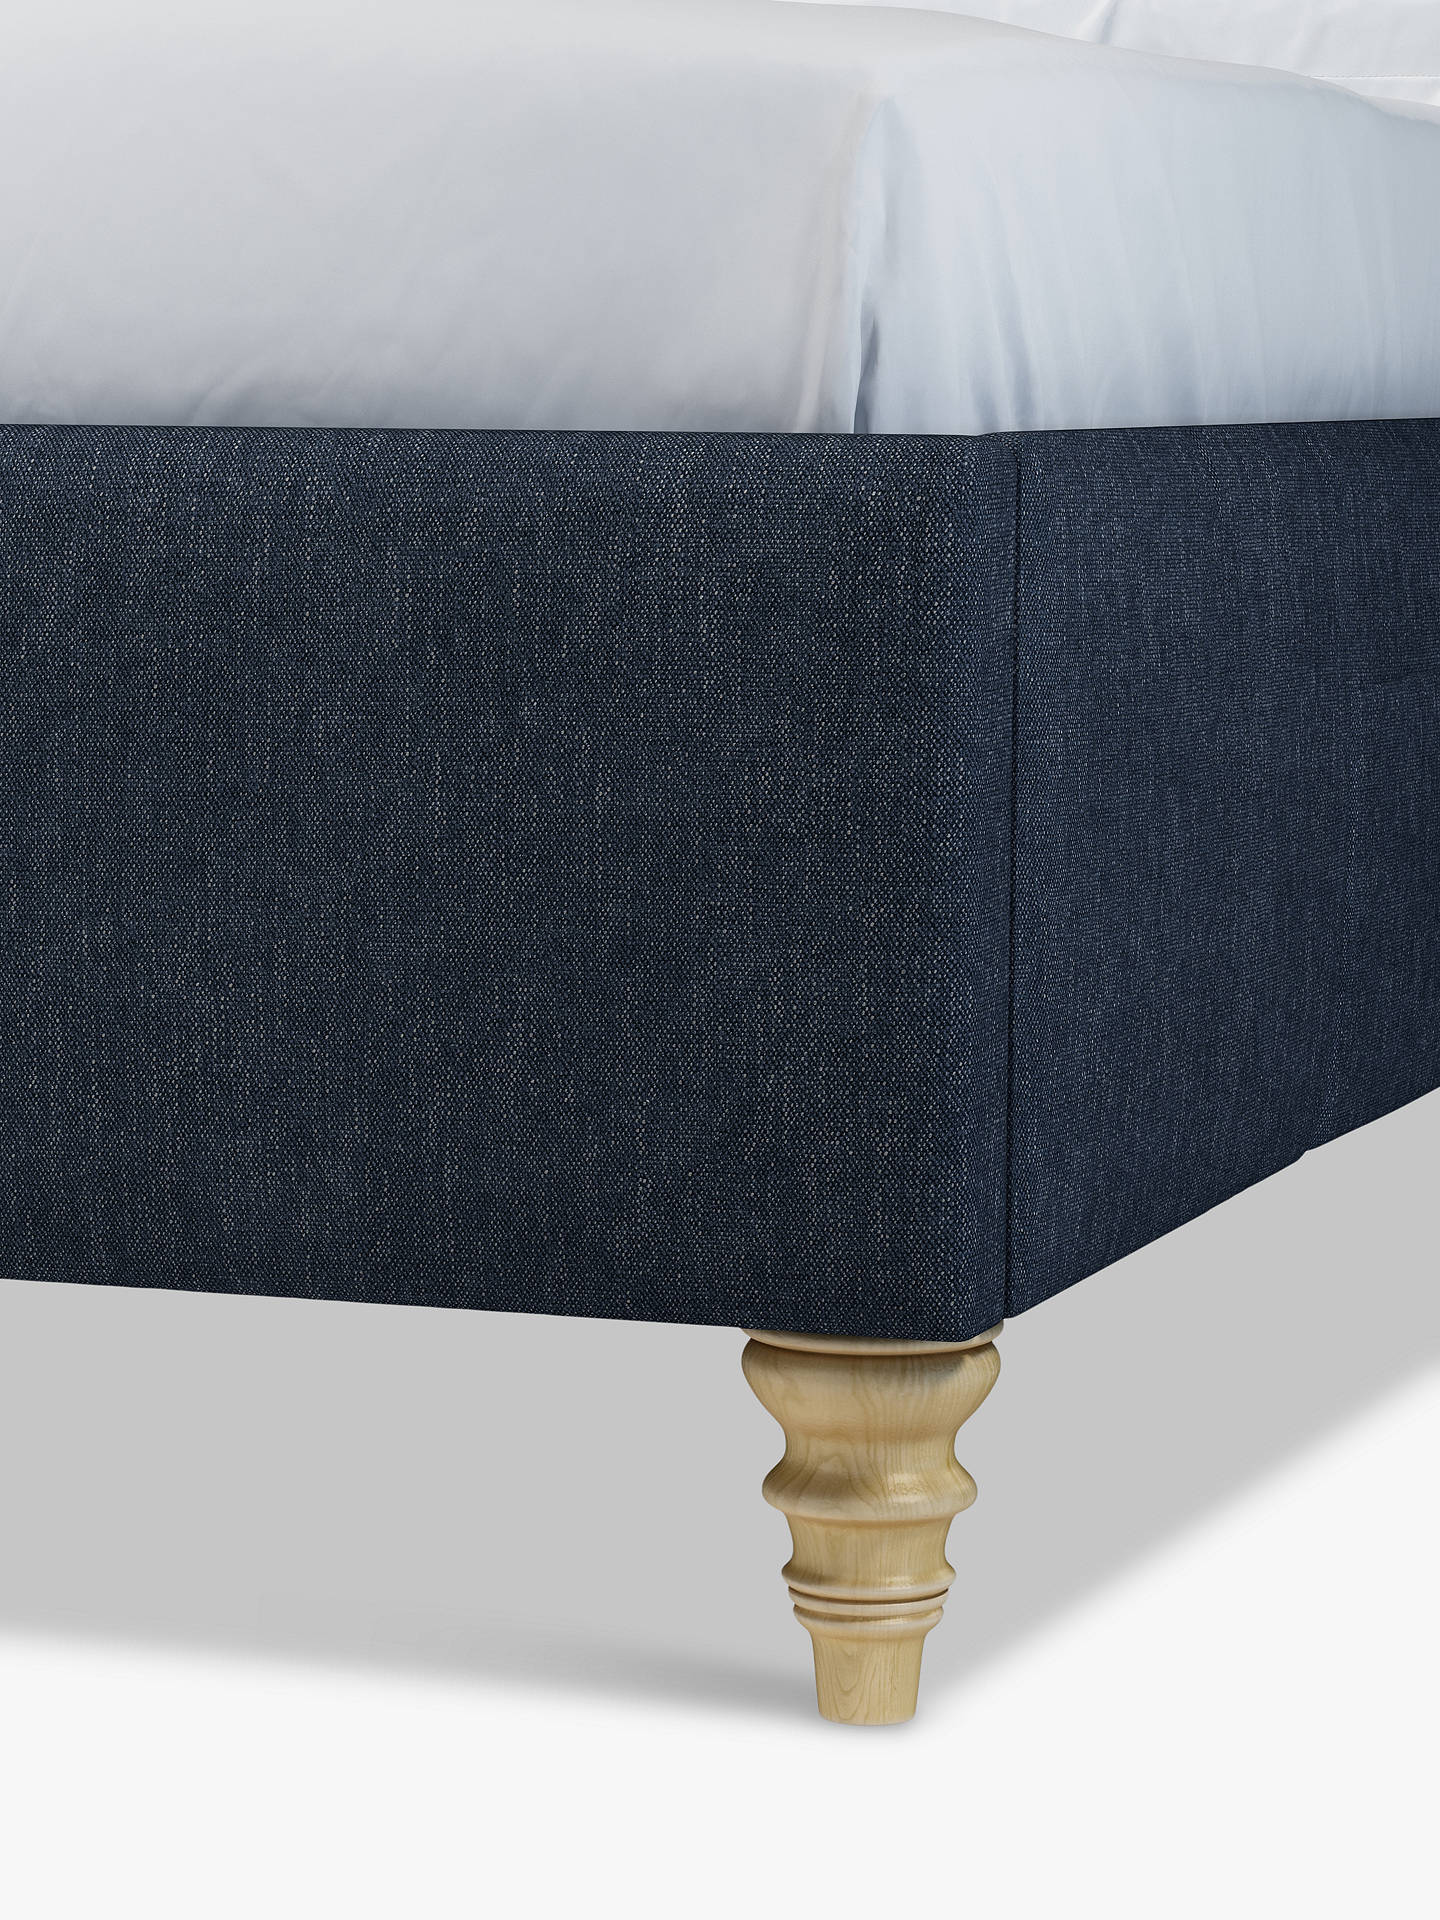 Buy John Lewis & Partners Rouen 2 Drawer Storage Upholstered Bed Frame, Double, Erin Midnight Online at johnlewis.com